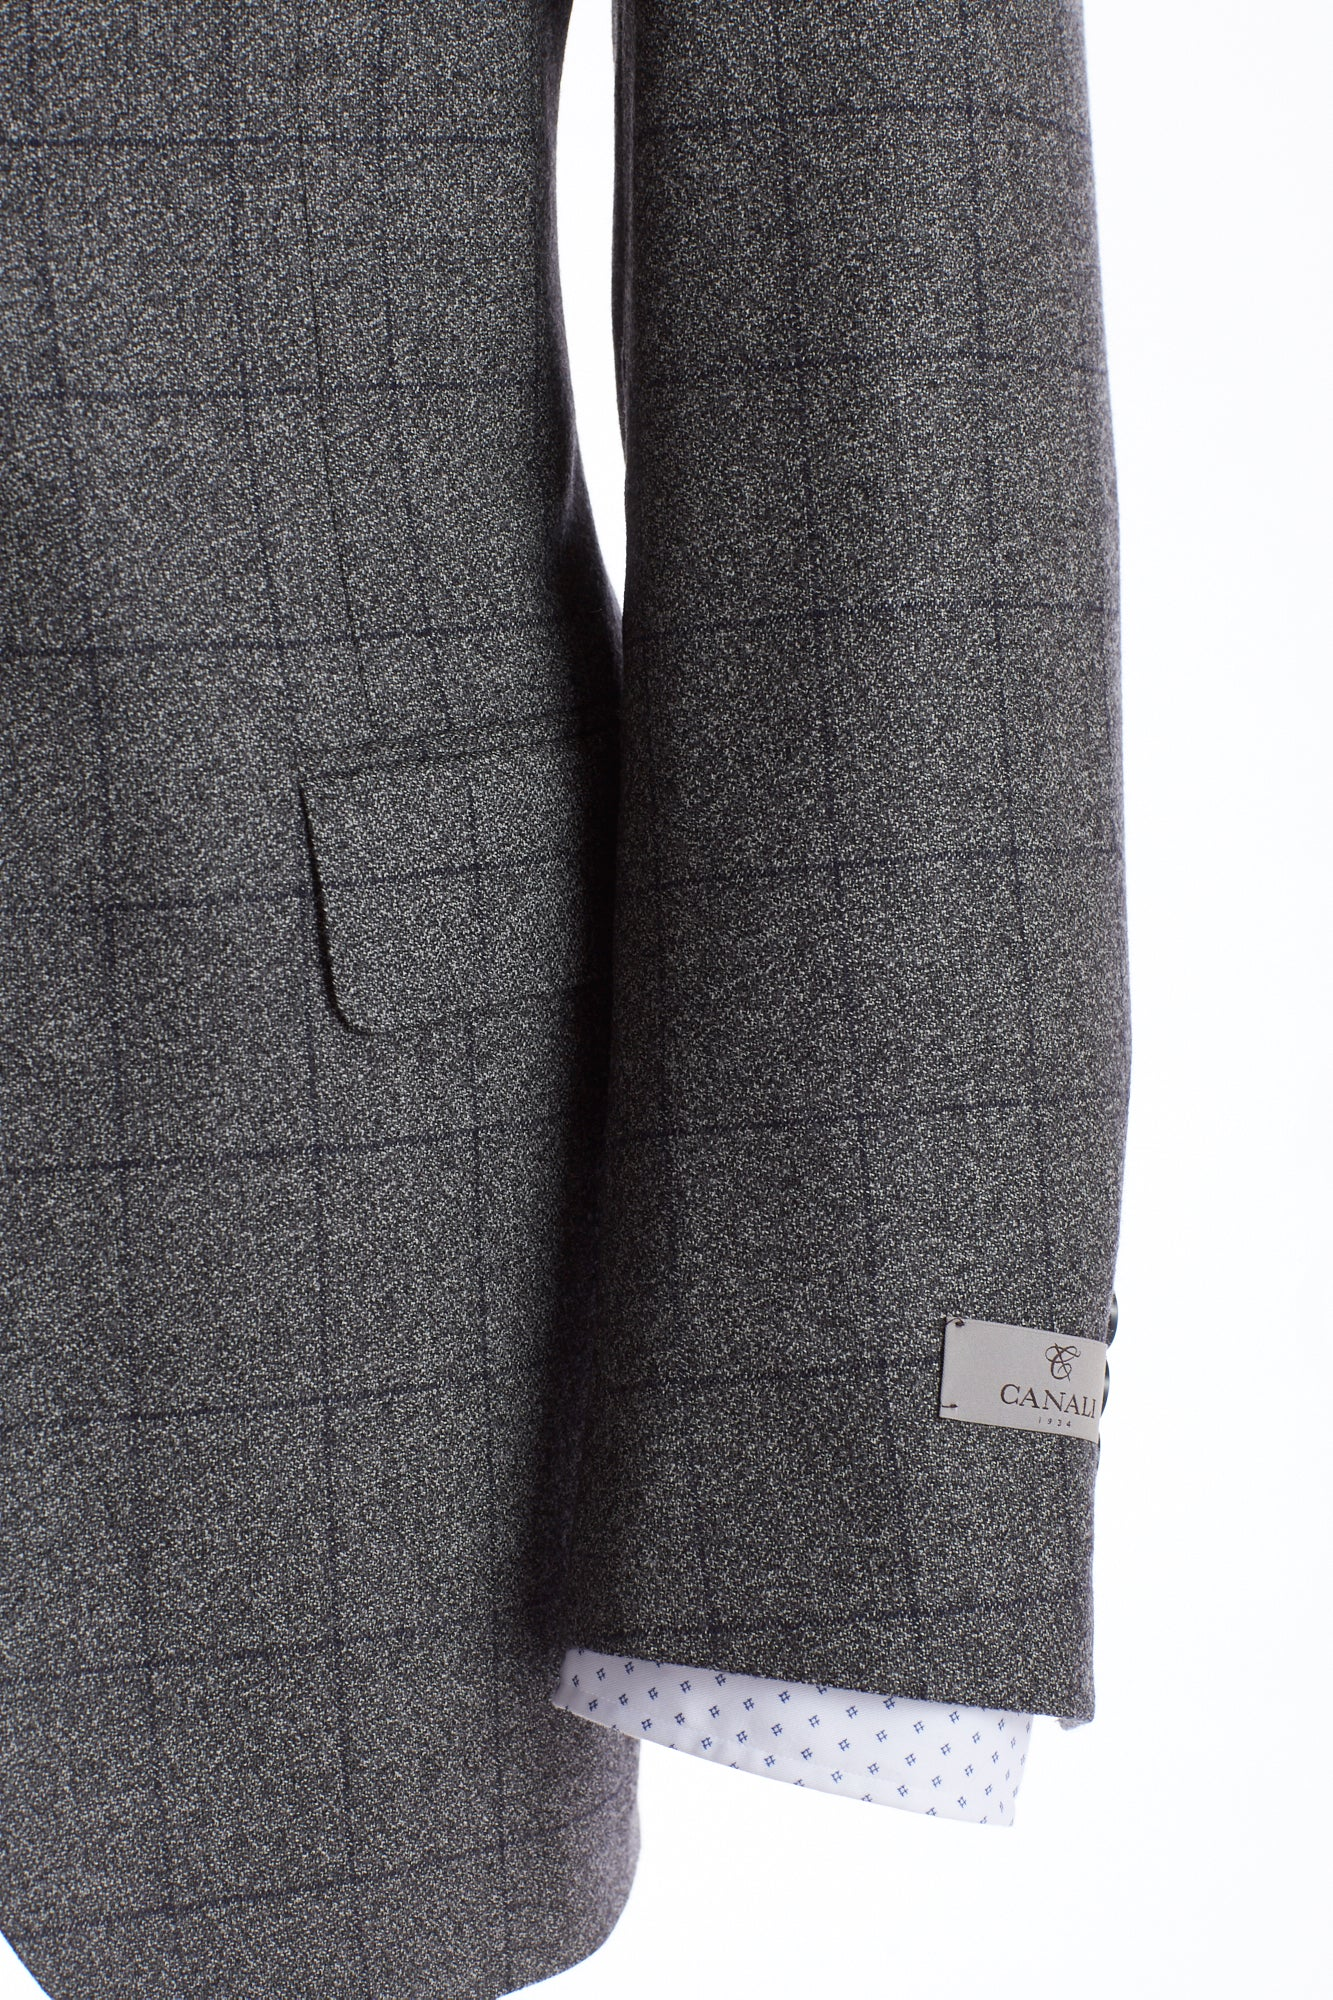 Canali Grey Windowpane Suit - Suits - Canali - LALONDE's